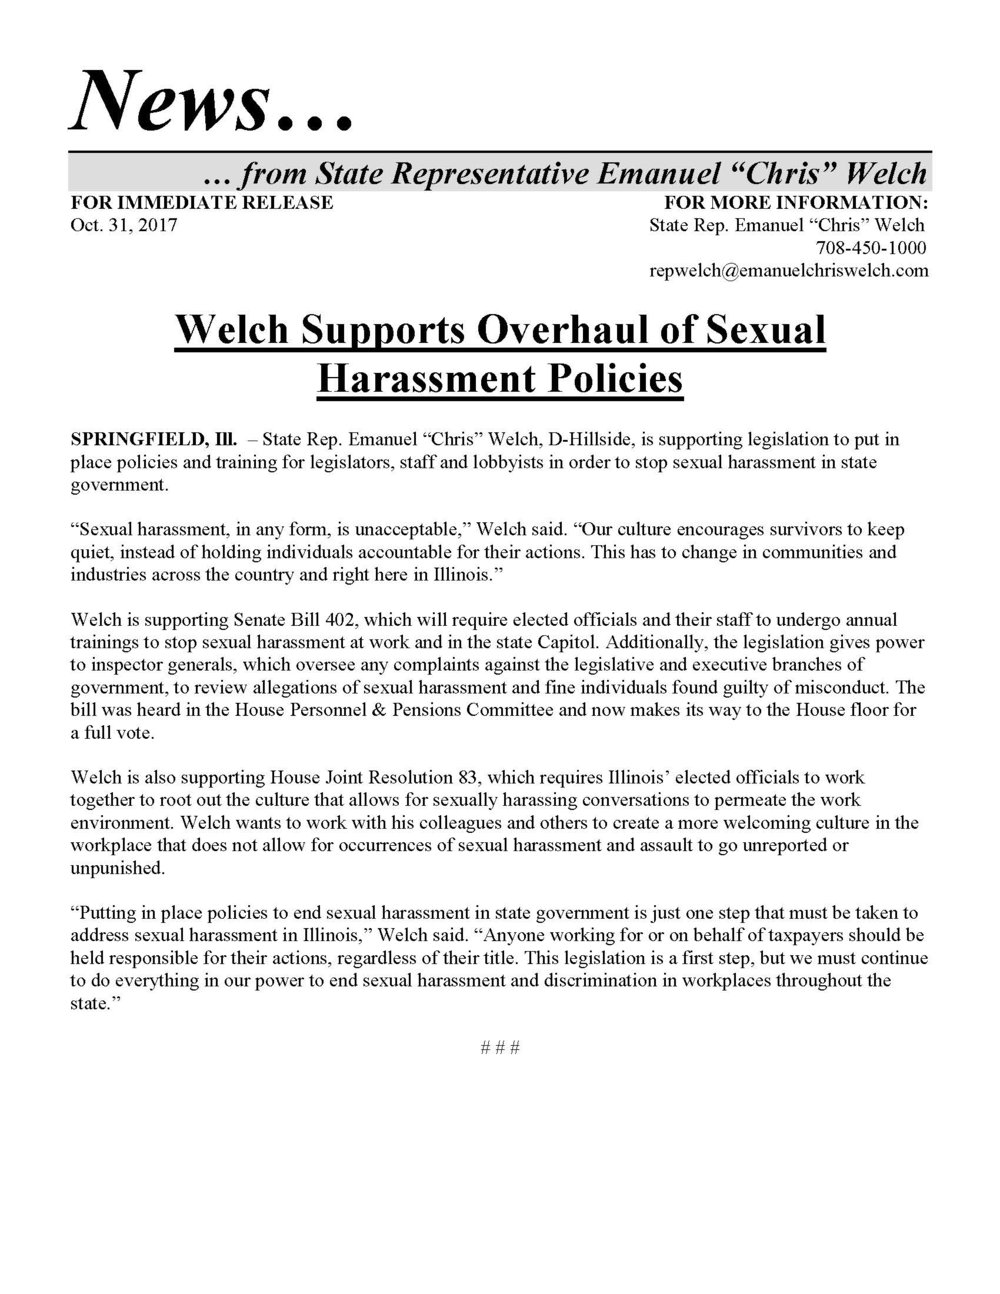 Welch Supports Overhaul of Sexual Harassment Policies  (October 31, 2017)